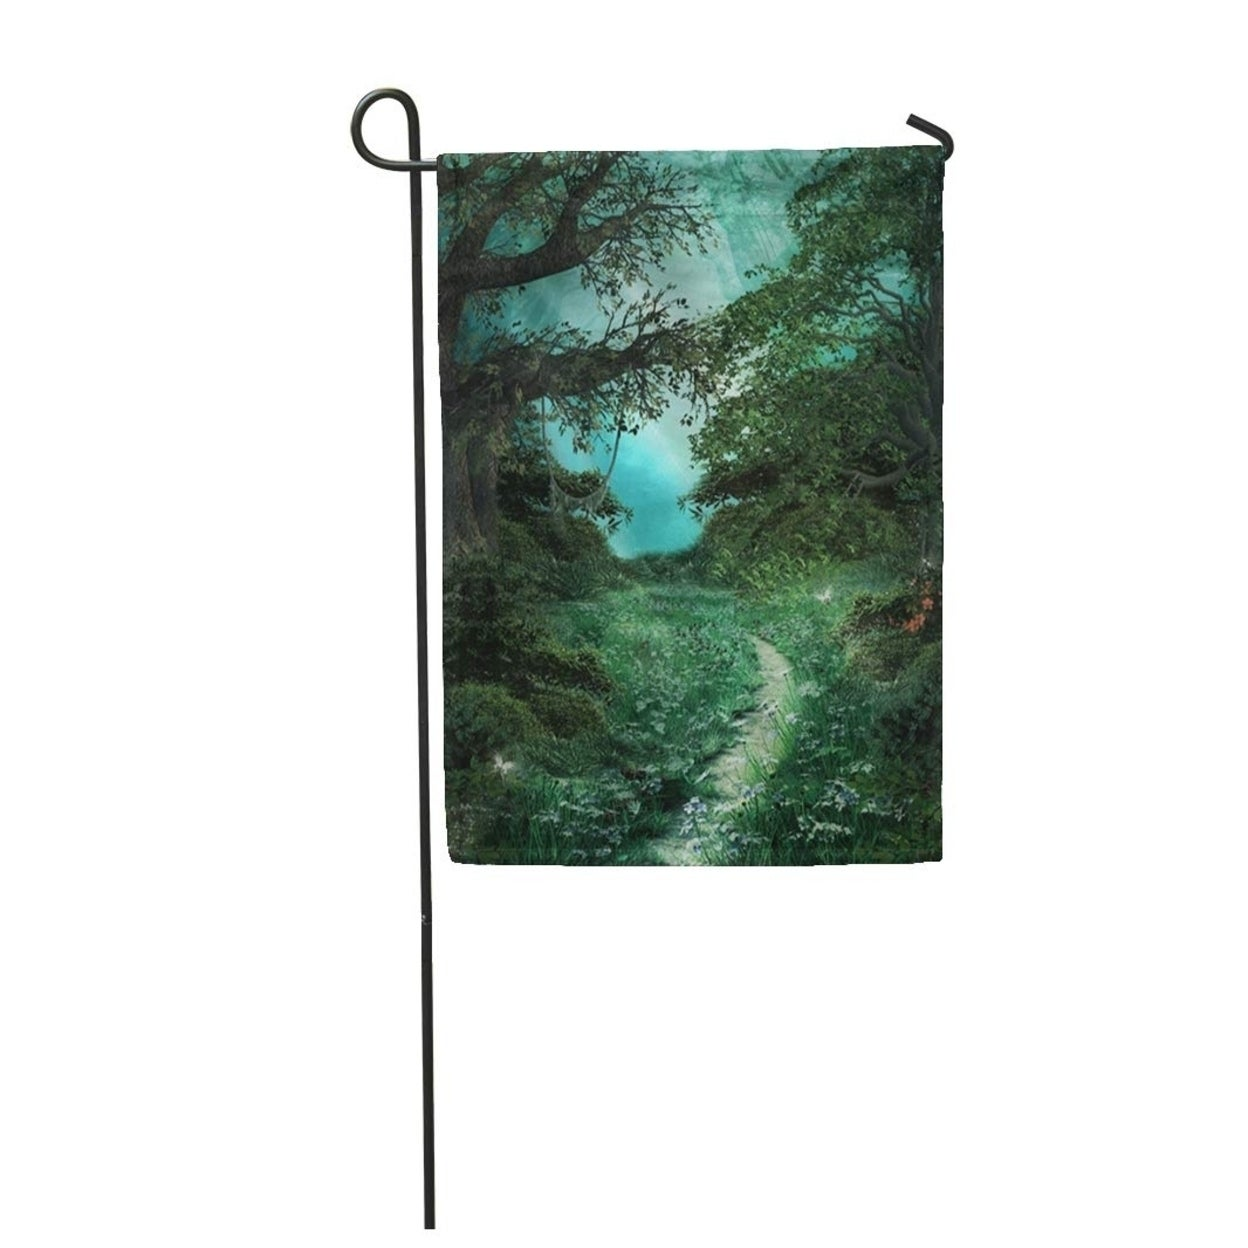 Blue Enchanted Pathway In The Green Magic Forest Mystic Fairy Garden Flag Decorative Flag House Banner 12x18 Inch Overstock 31338172